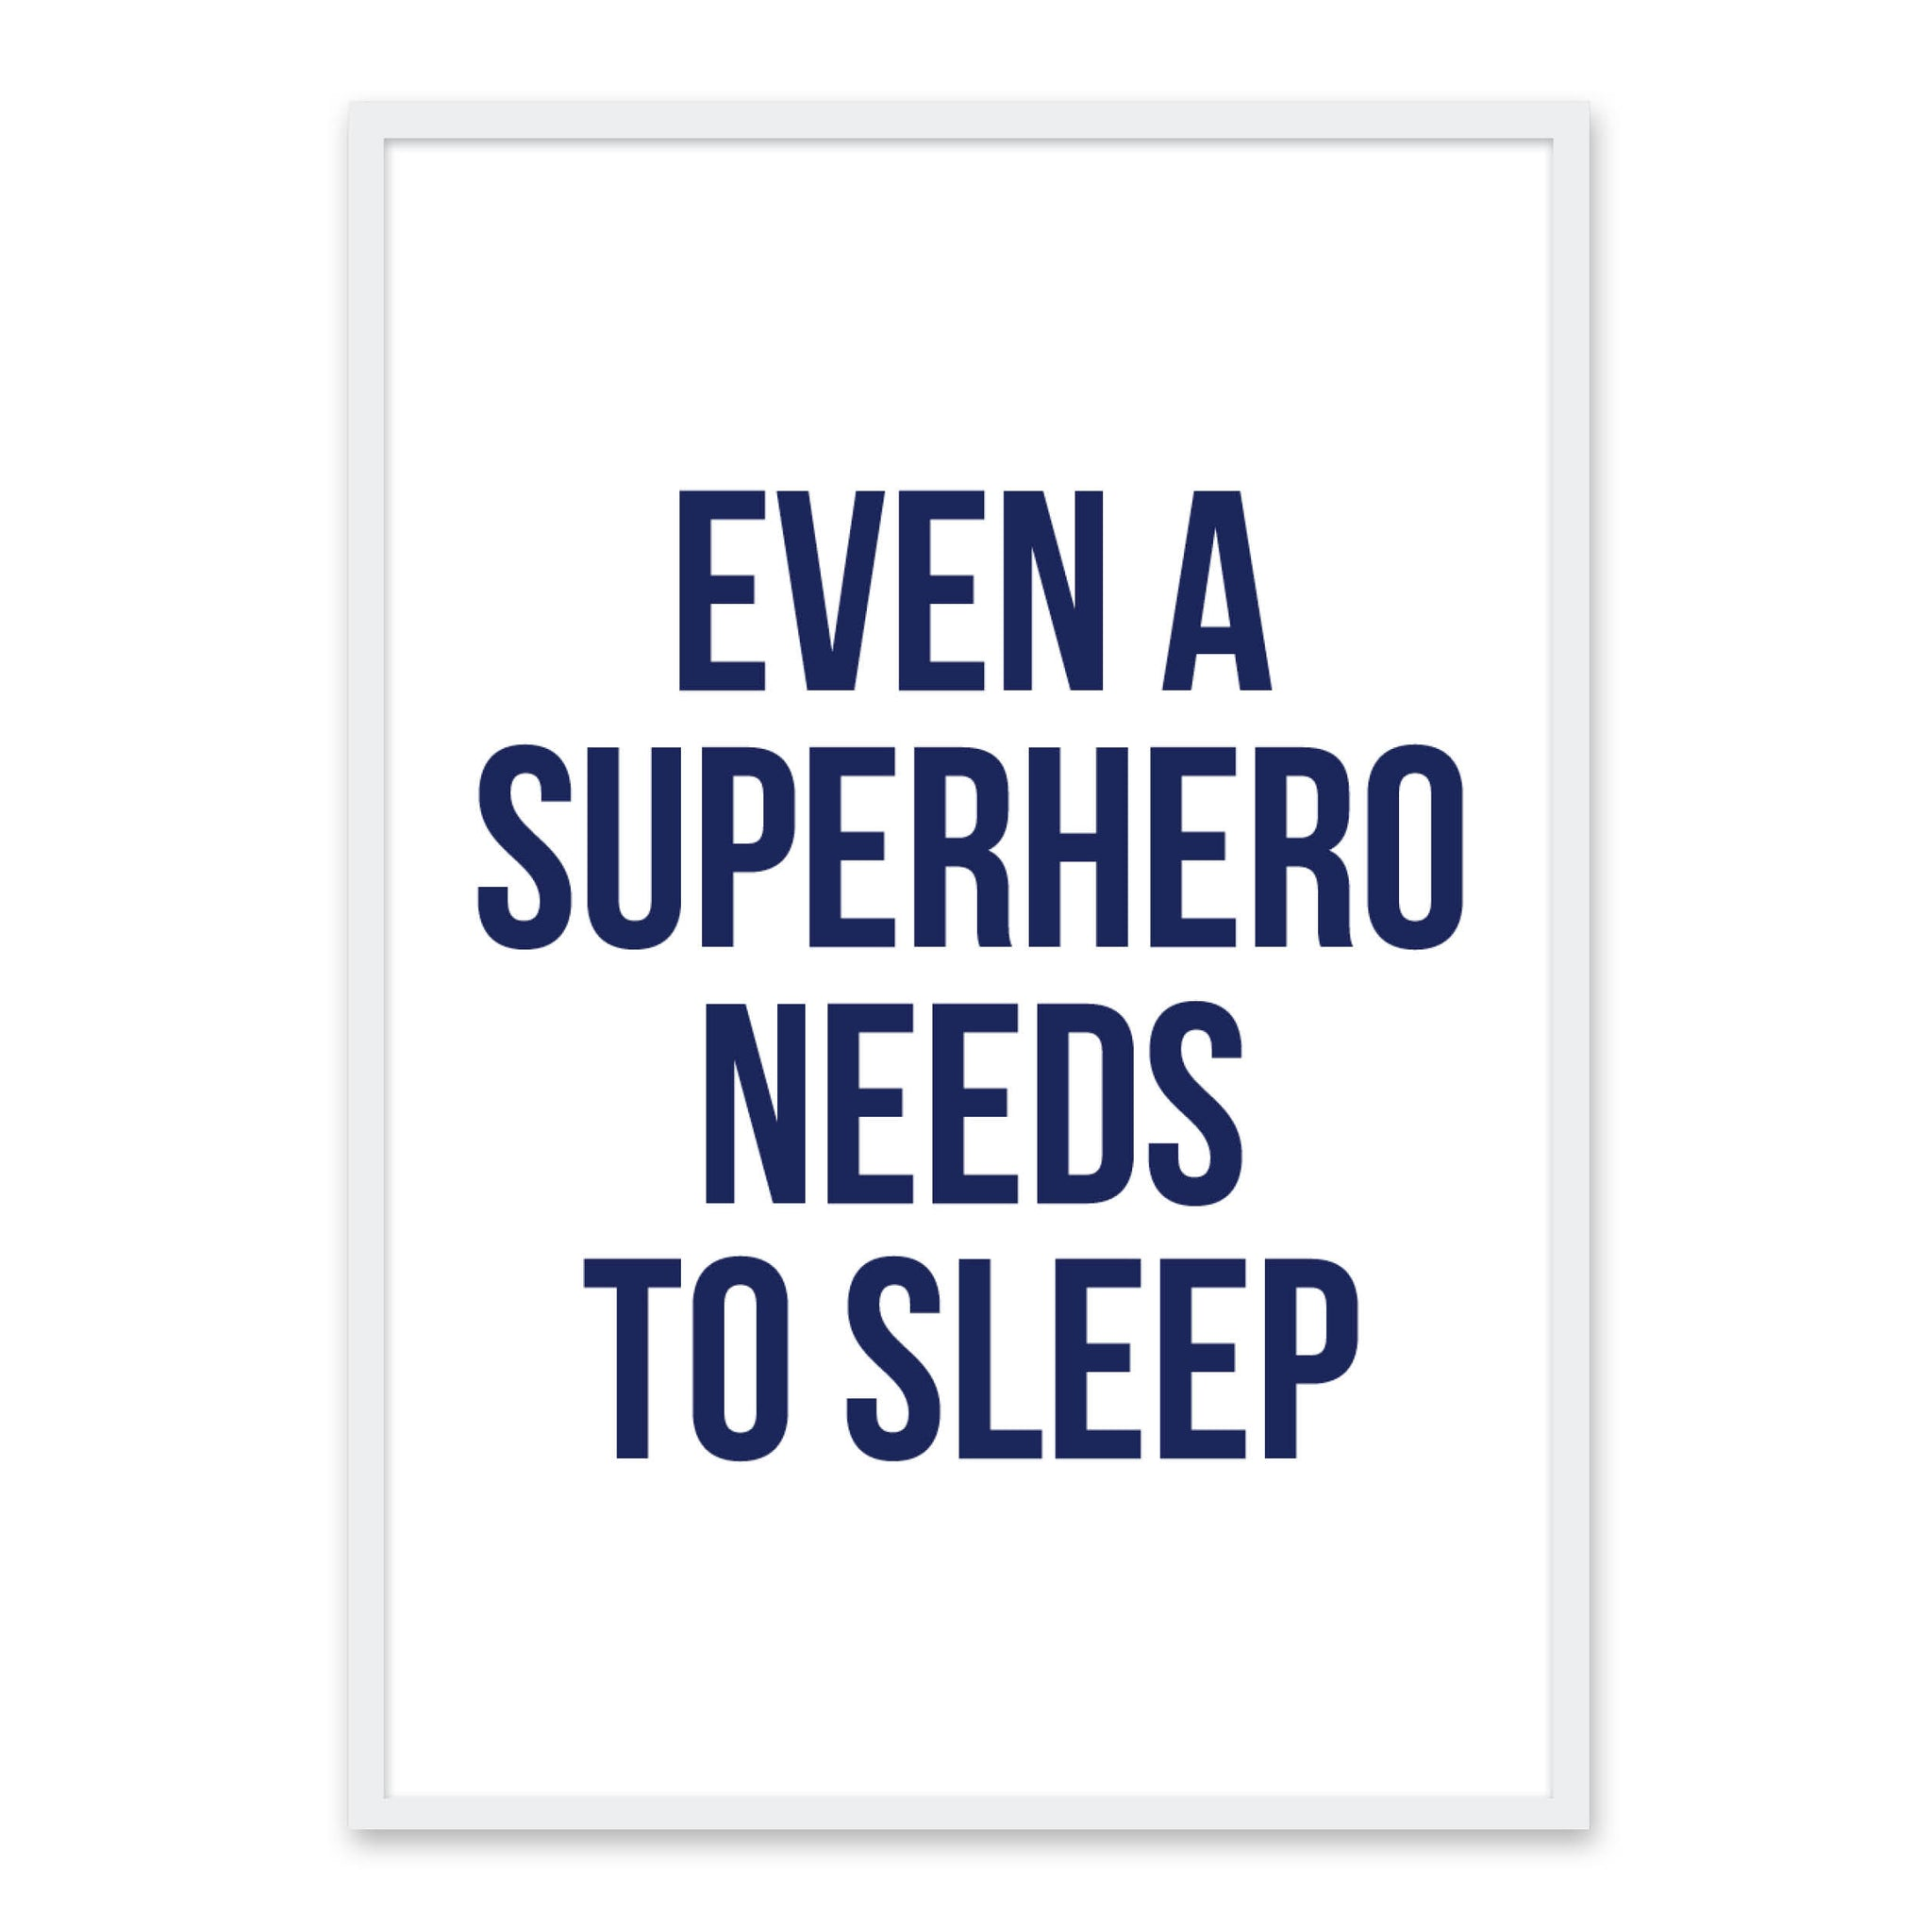 Even a superhero needs to sleep